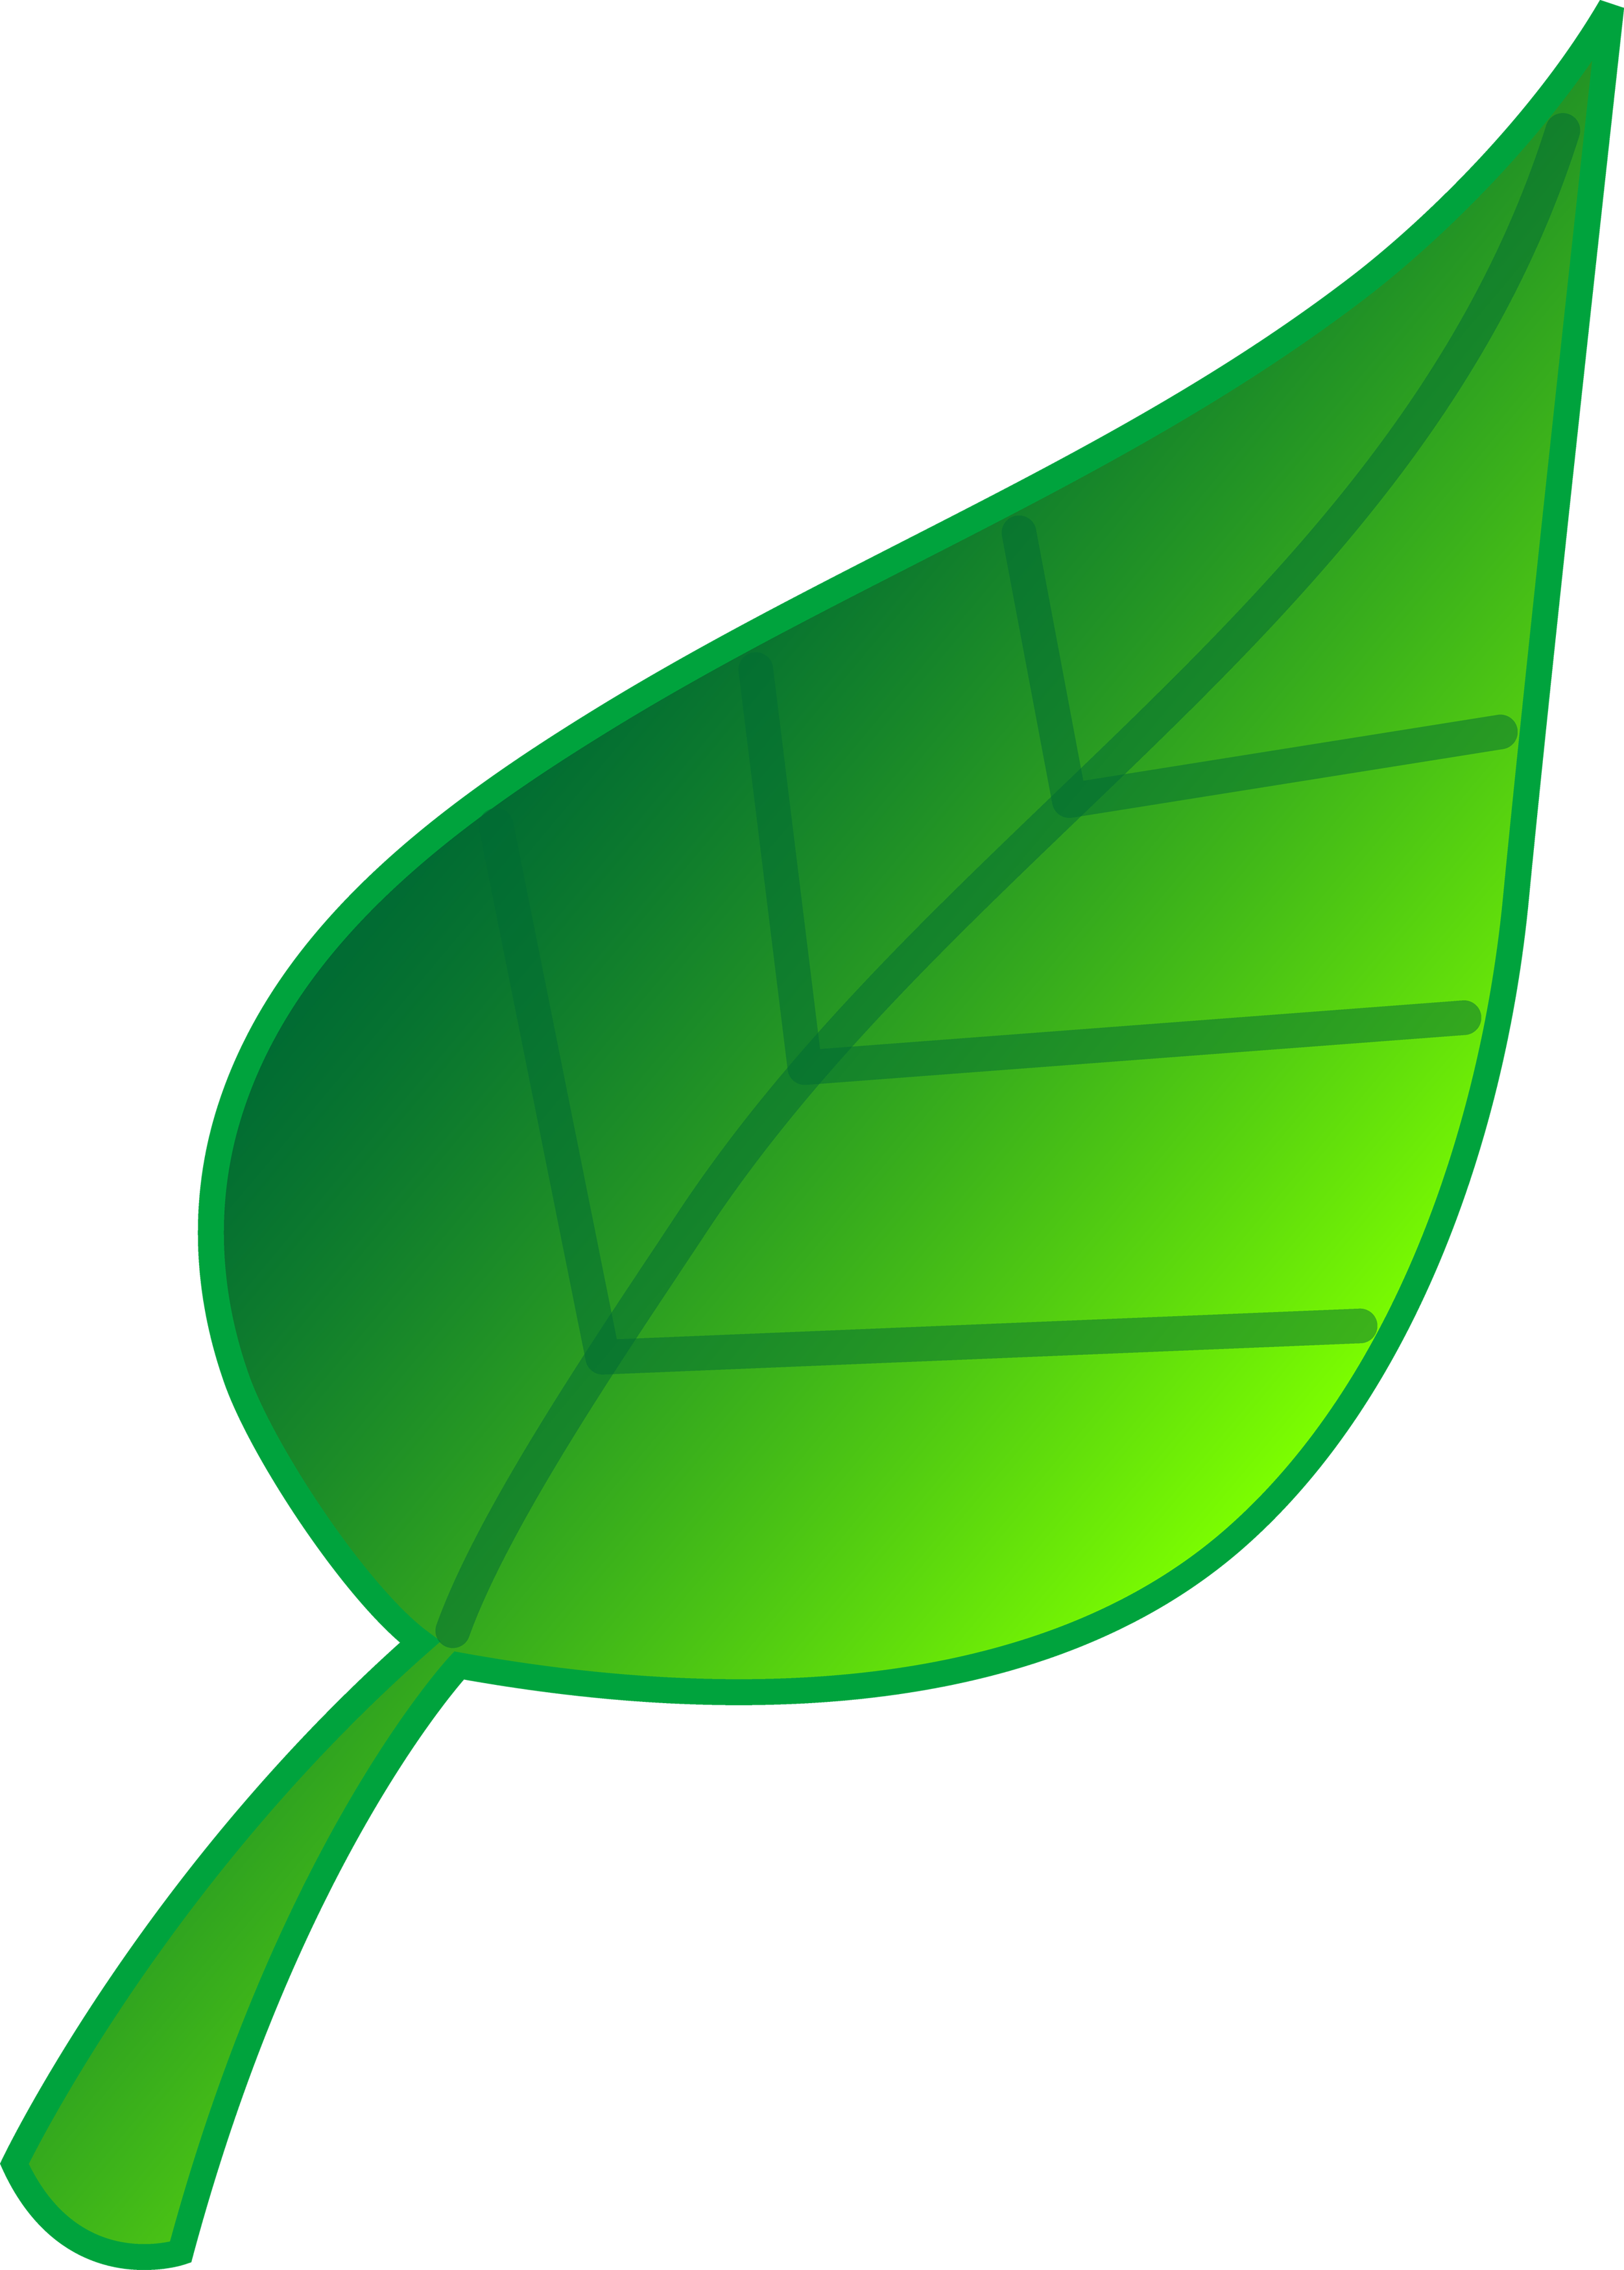 2504x3500 Leaf Animated Leaves Clipart Image